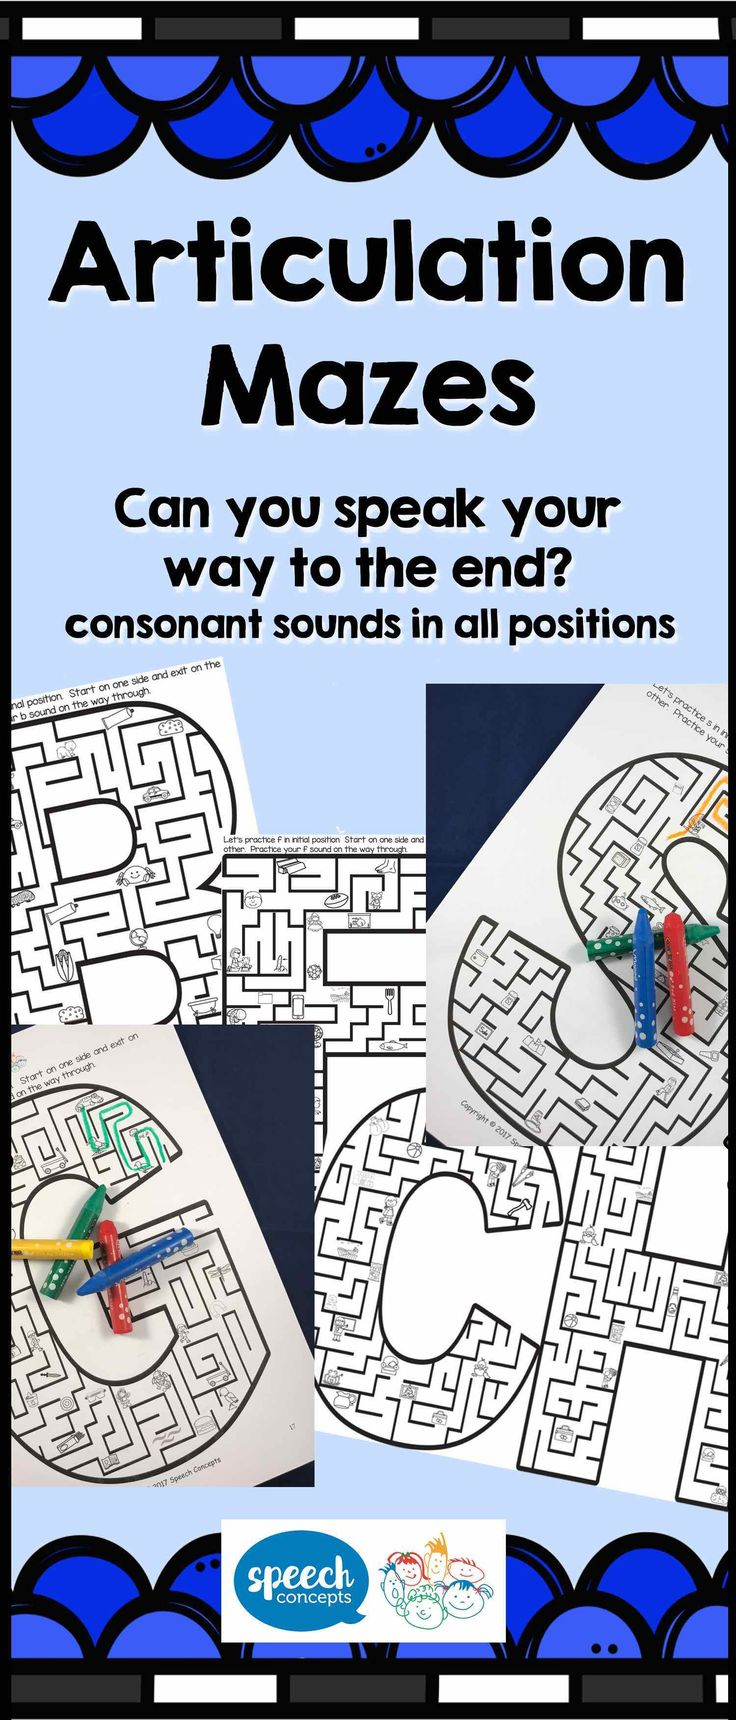 Can you articulate your way out of the maze? Mazes for every consonant sound in initial, medial and final position (with exception for w and y - initial position only, and no maze for x)Great for word level activities, but can be expanded to sentences. Made an extending crazy sentence with each picture you pass. So grab your crayons and see if you can articulate your way through the maze